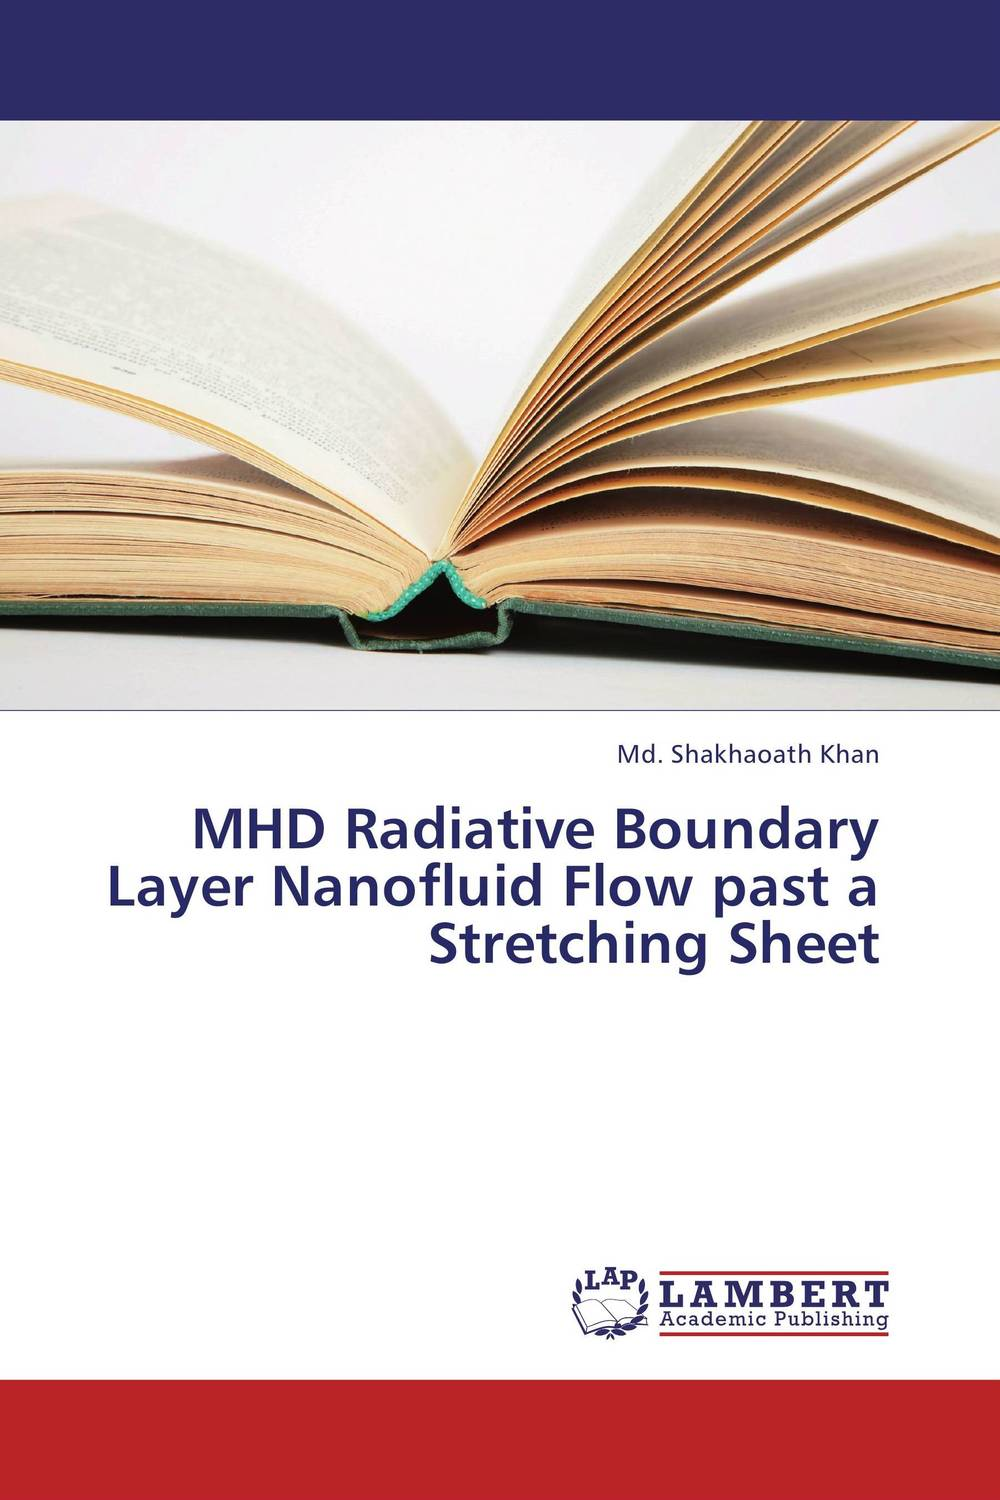 MHD Radiative Boundary Layer Nanofluid Flow past a Stretching Sheet mhd radiative boundary layer nanofluid flow past a stretching sheet